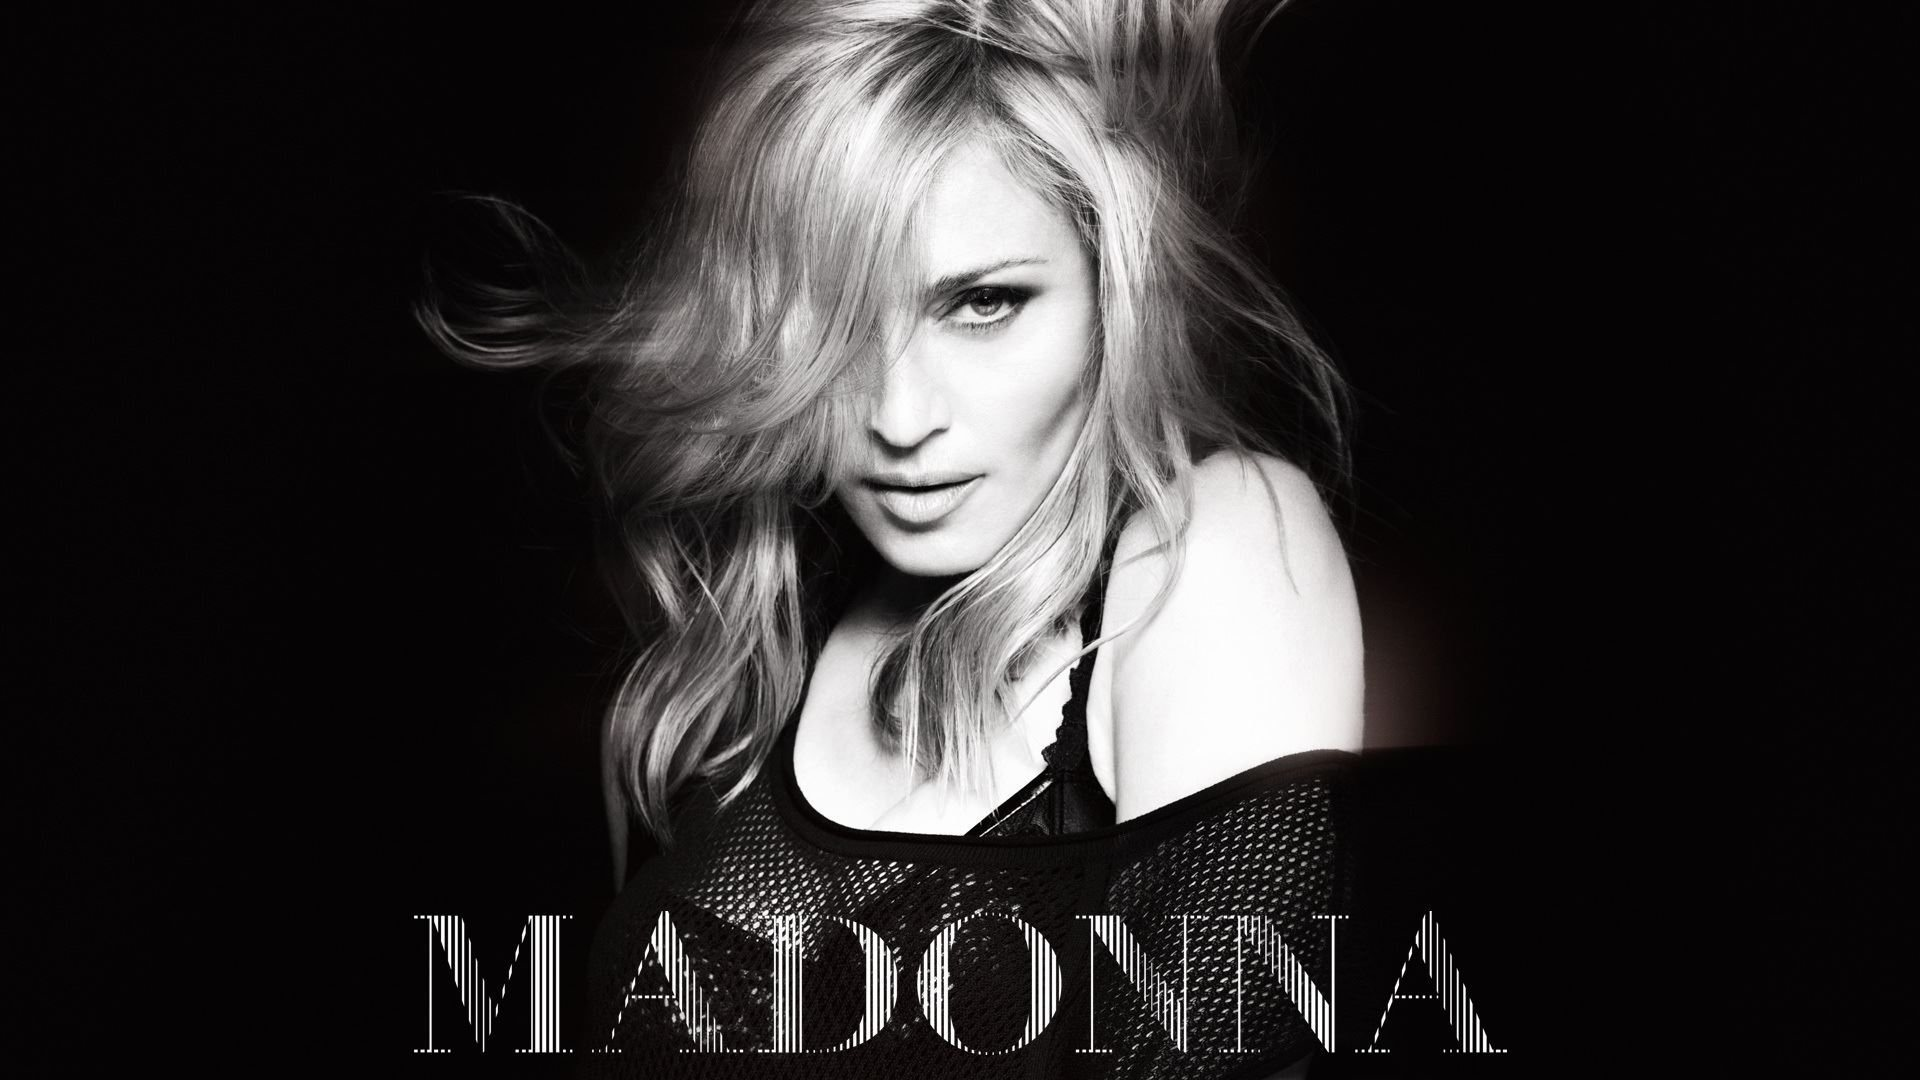 Madonna tops forbes 2013 list of top earning celebrities - Madonna hd images ...